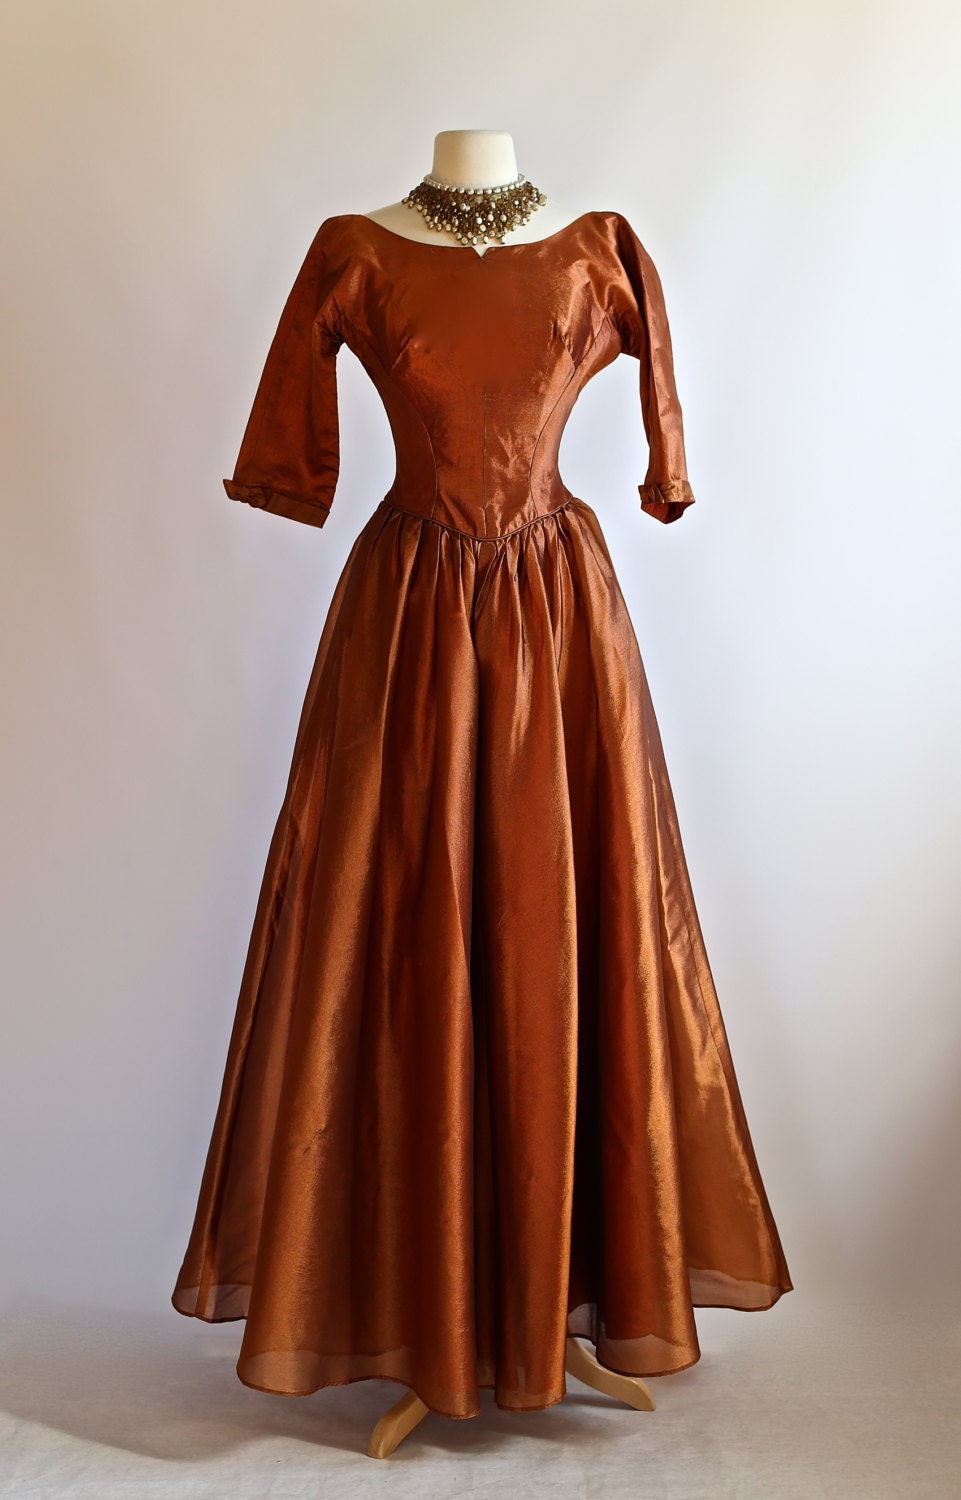 vintage 1950s copper evening gown vintage 50s formal dress. Black Bedroom Furniture Sets. Home Design Ideas